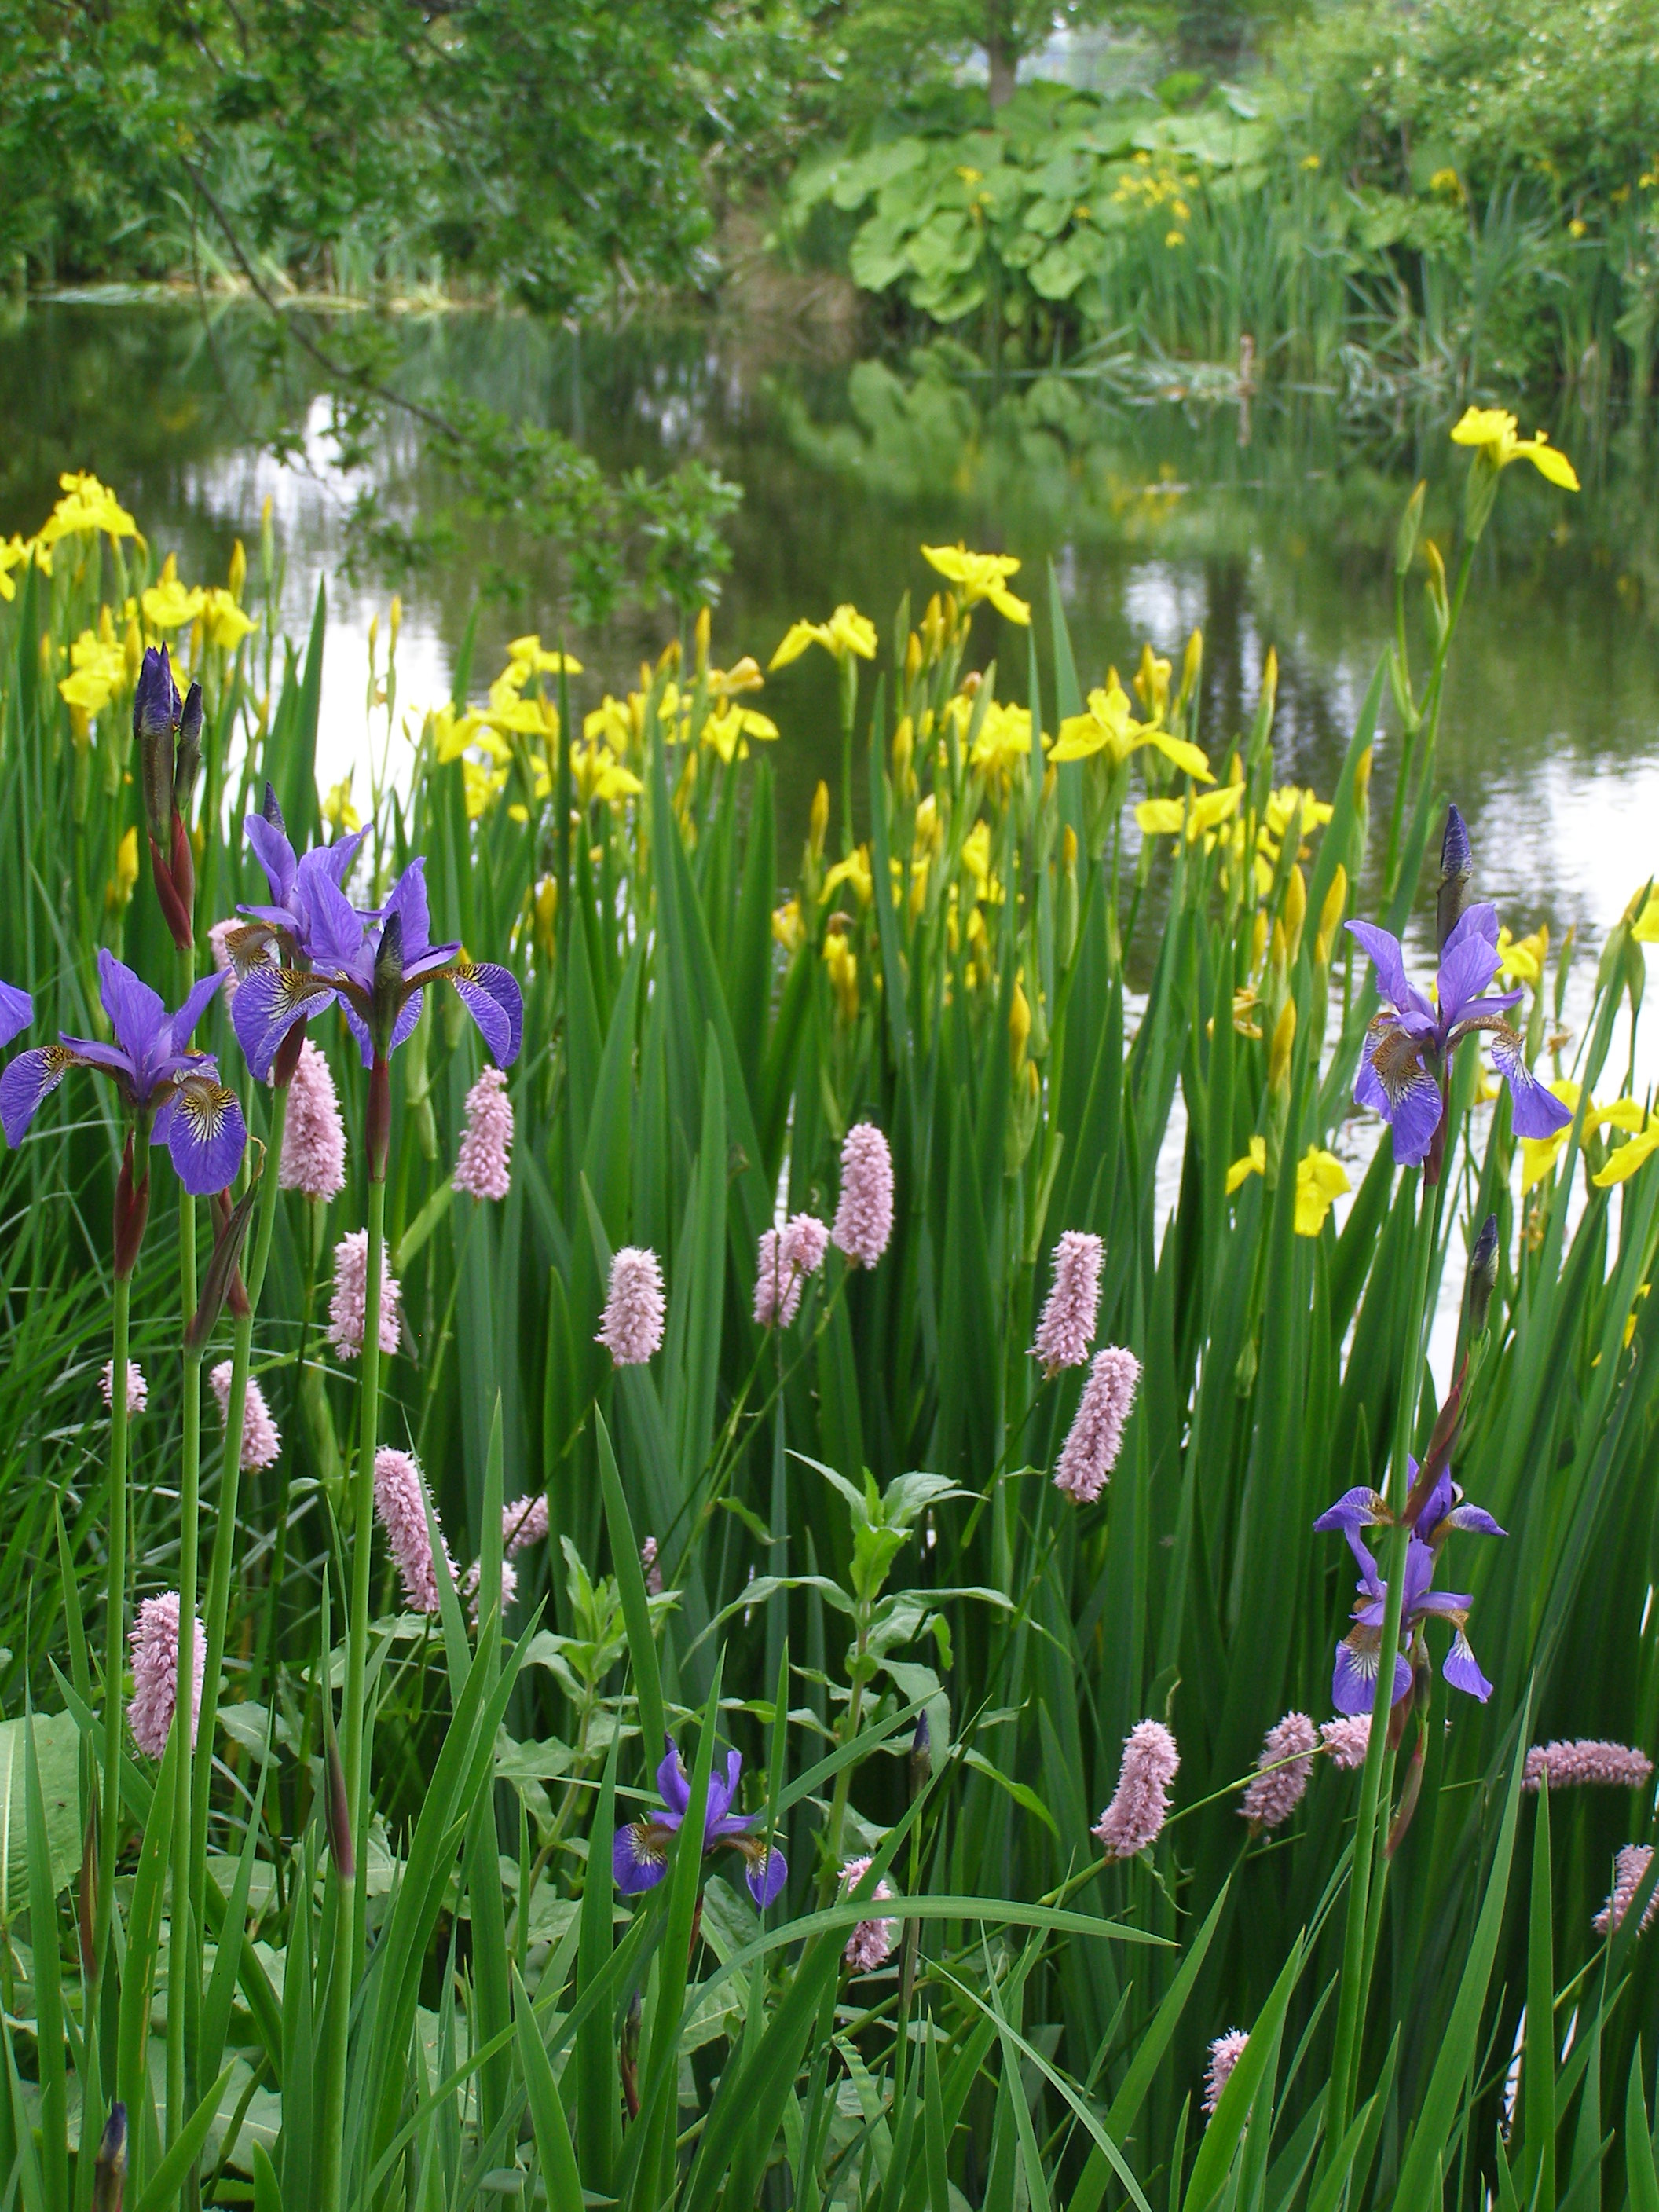 A well landscaped pond opens the possibility of new plants